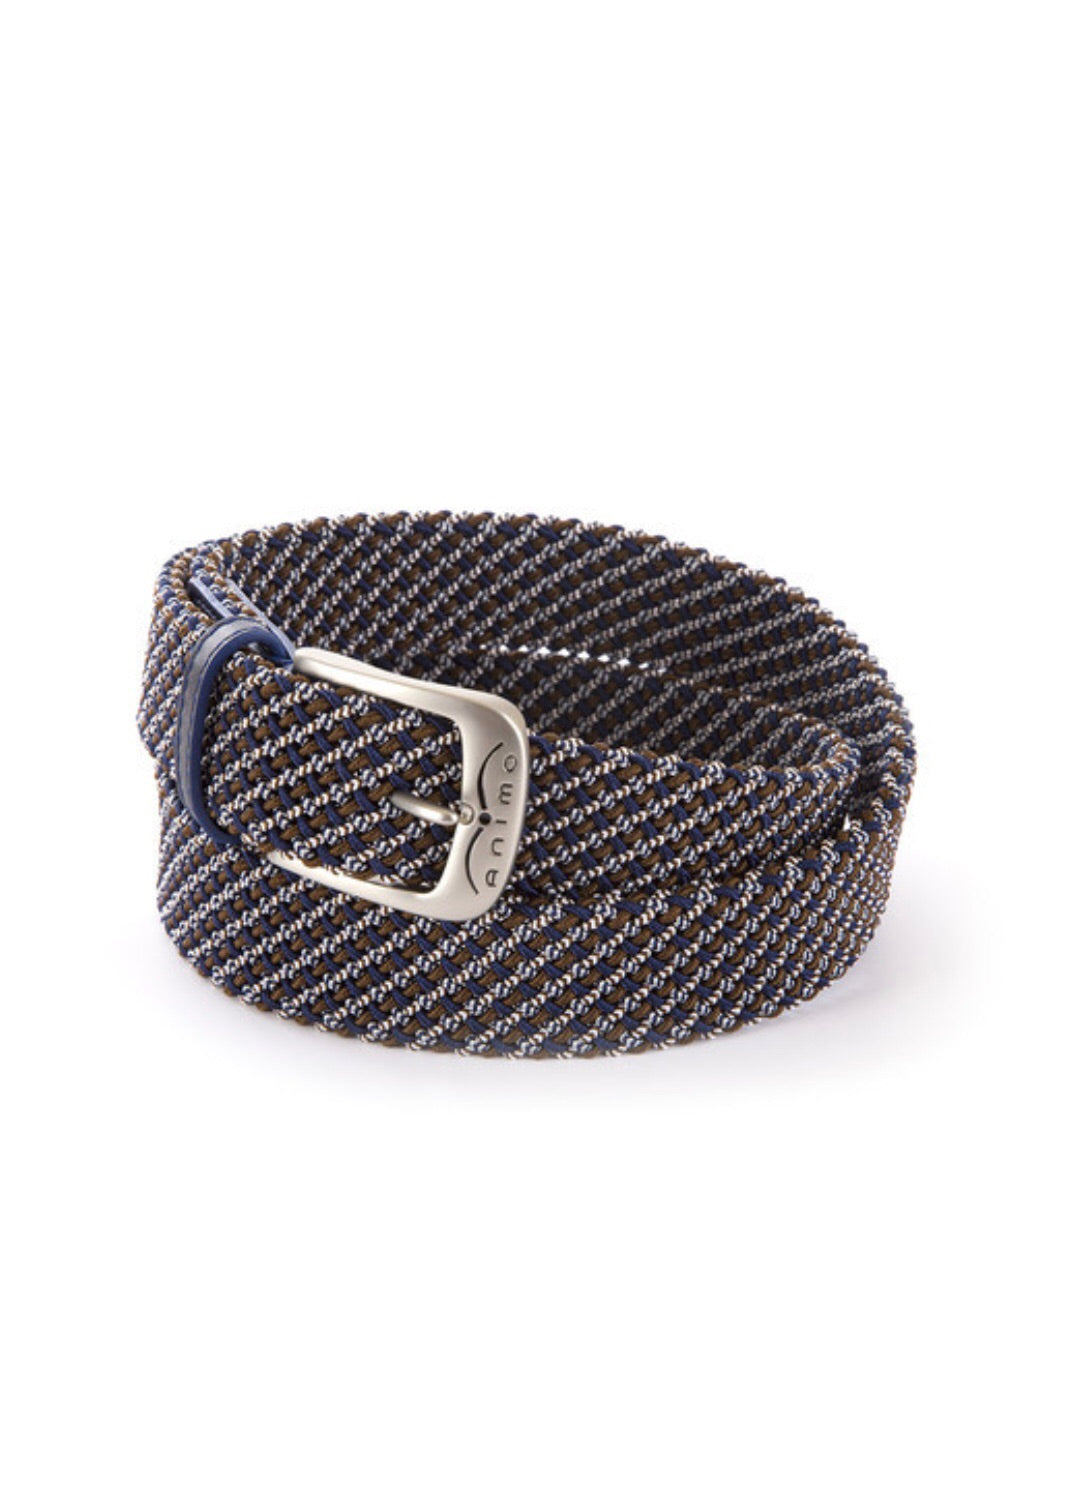 Animo Hartic Nylon Woven Belt Beige/Blue/Grey 2020 - Luxe EQ